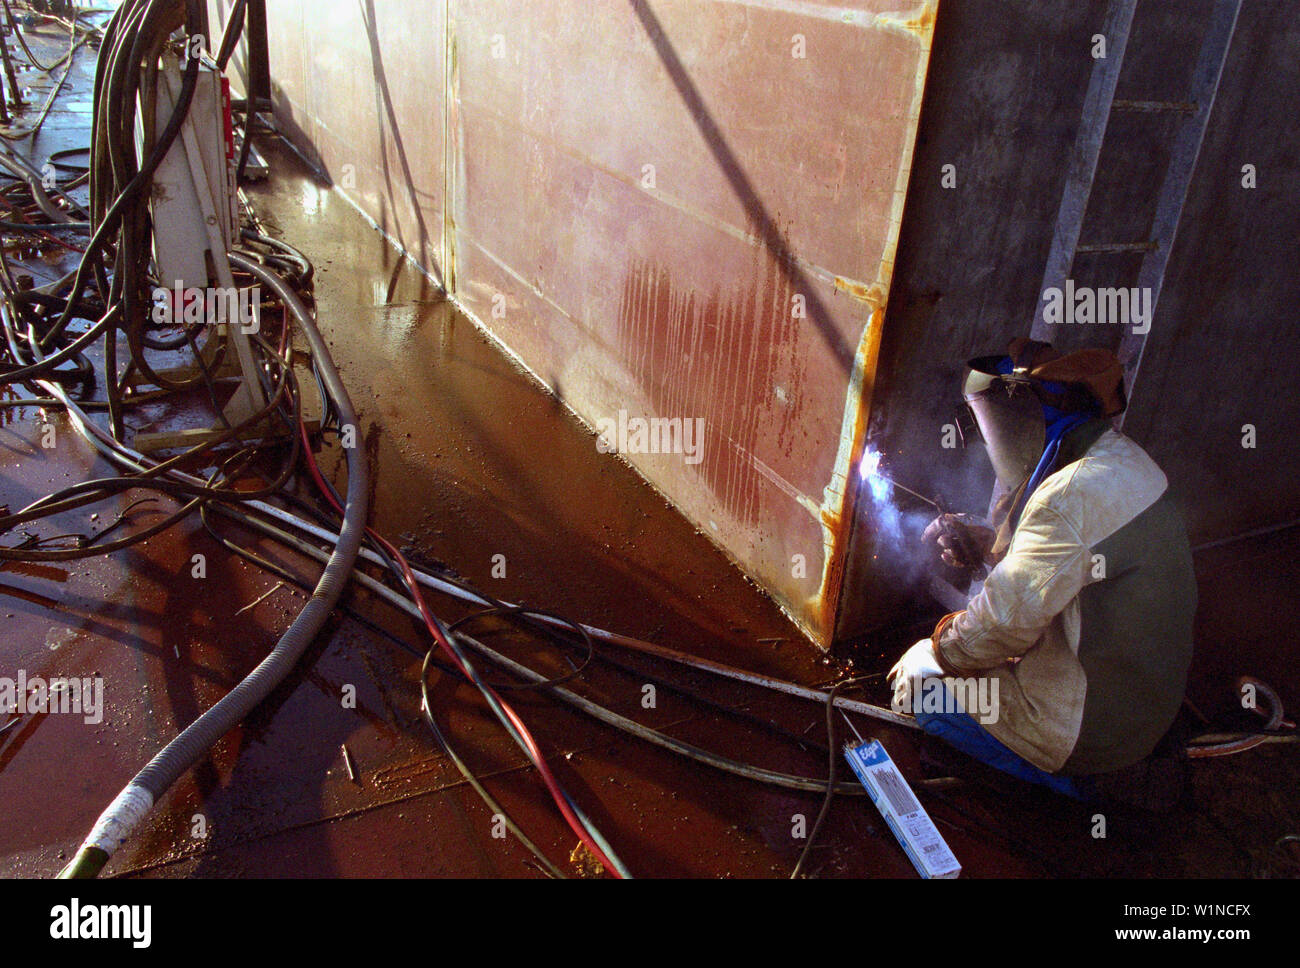 Welding steel-plates, dry dock, Queen Mary 2, Saint-Nazaire, France - Stock Image